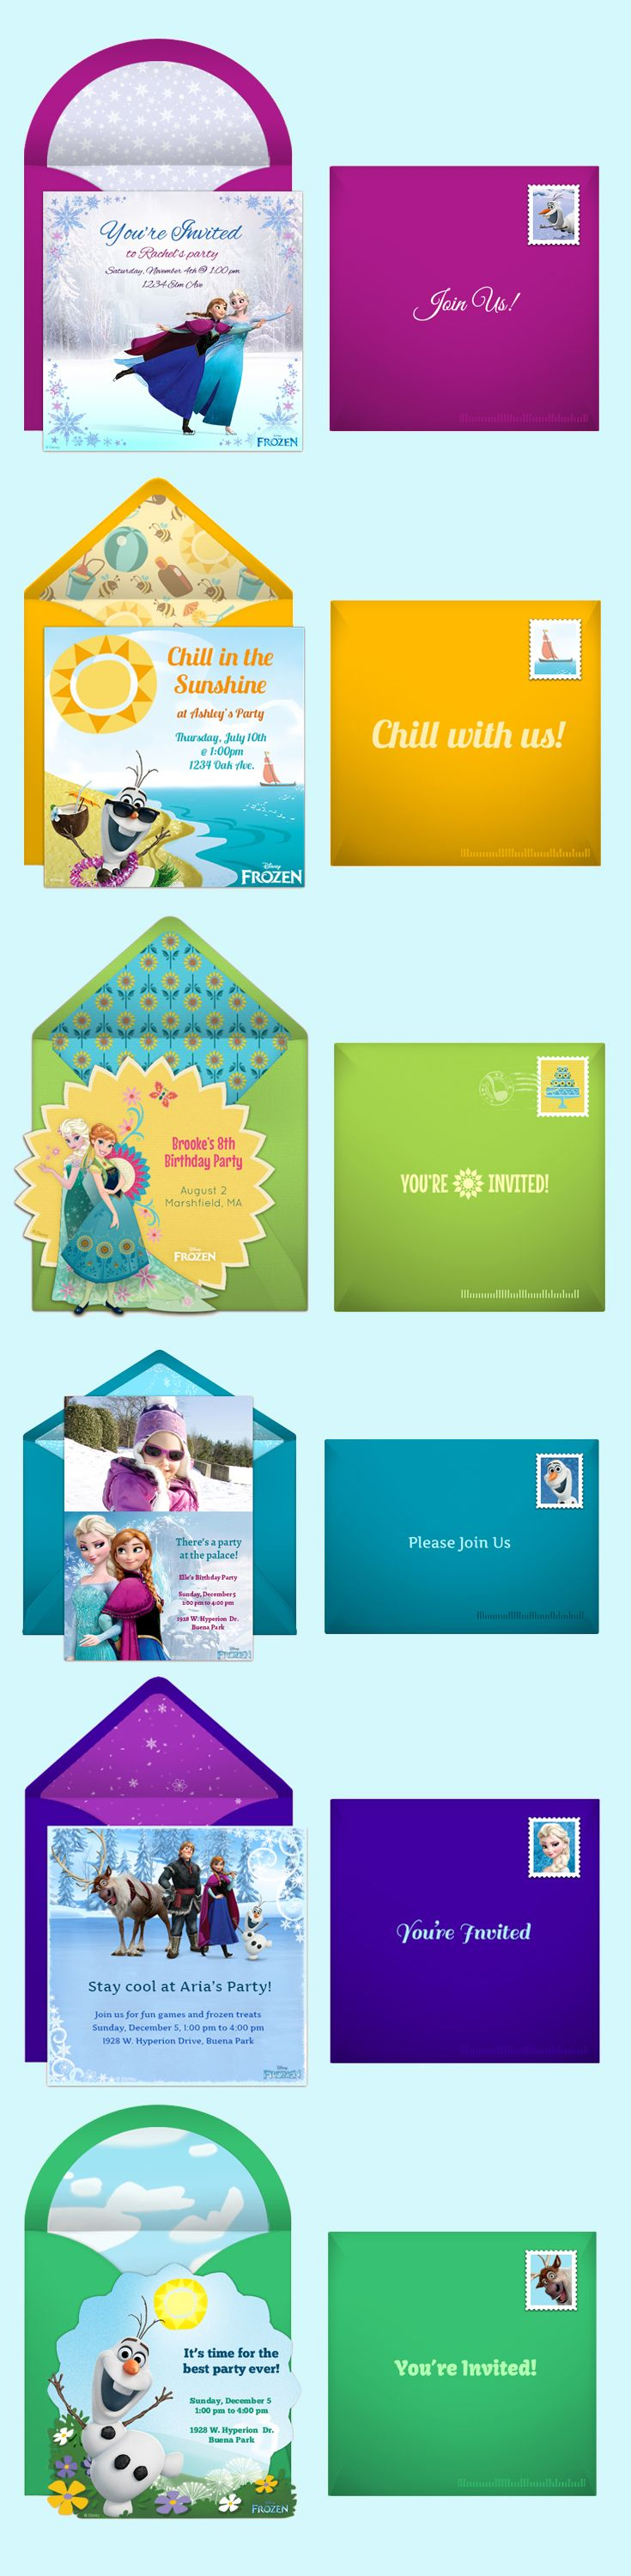 Paper invites are too formal, and emails are too casual. Get it just right with online invitations from Punchbowl. We've got everything you need for your Frozen themed party. http://www.punchbowl.com/disney/groups/frozen/?utm_source=Pinterest&utm_medium=3.23P